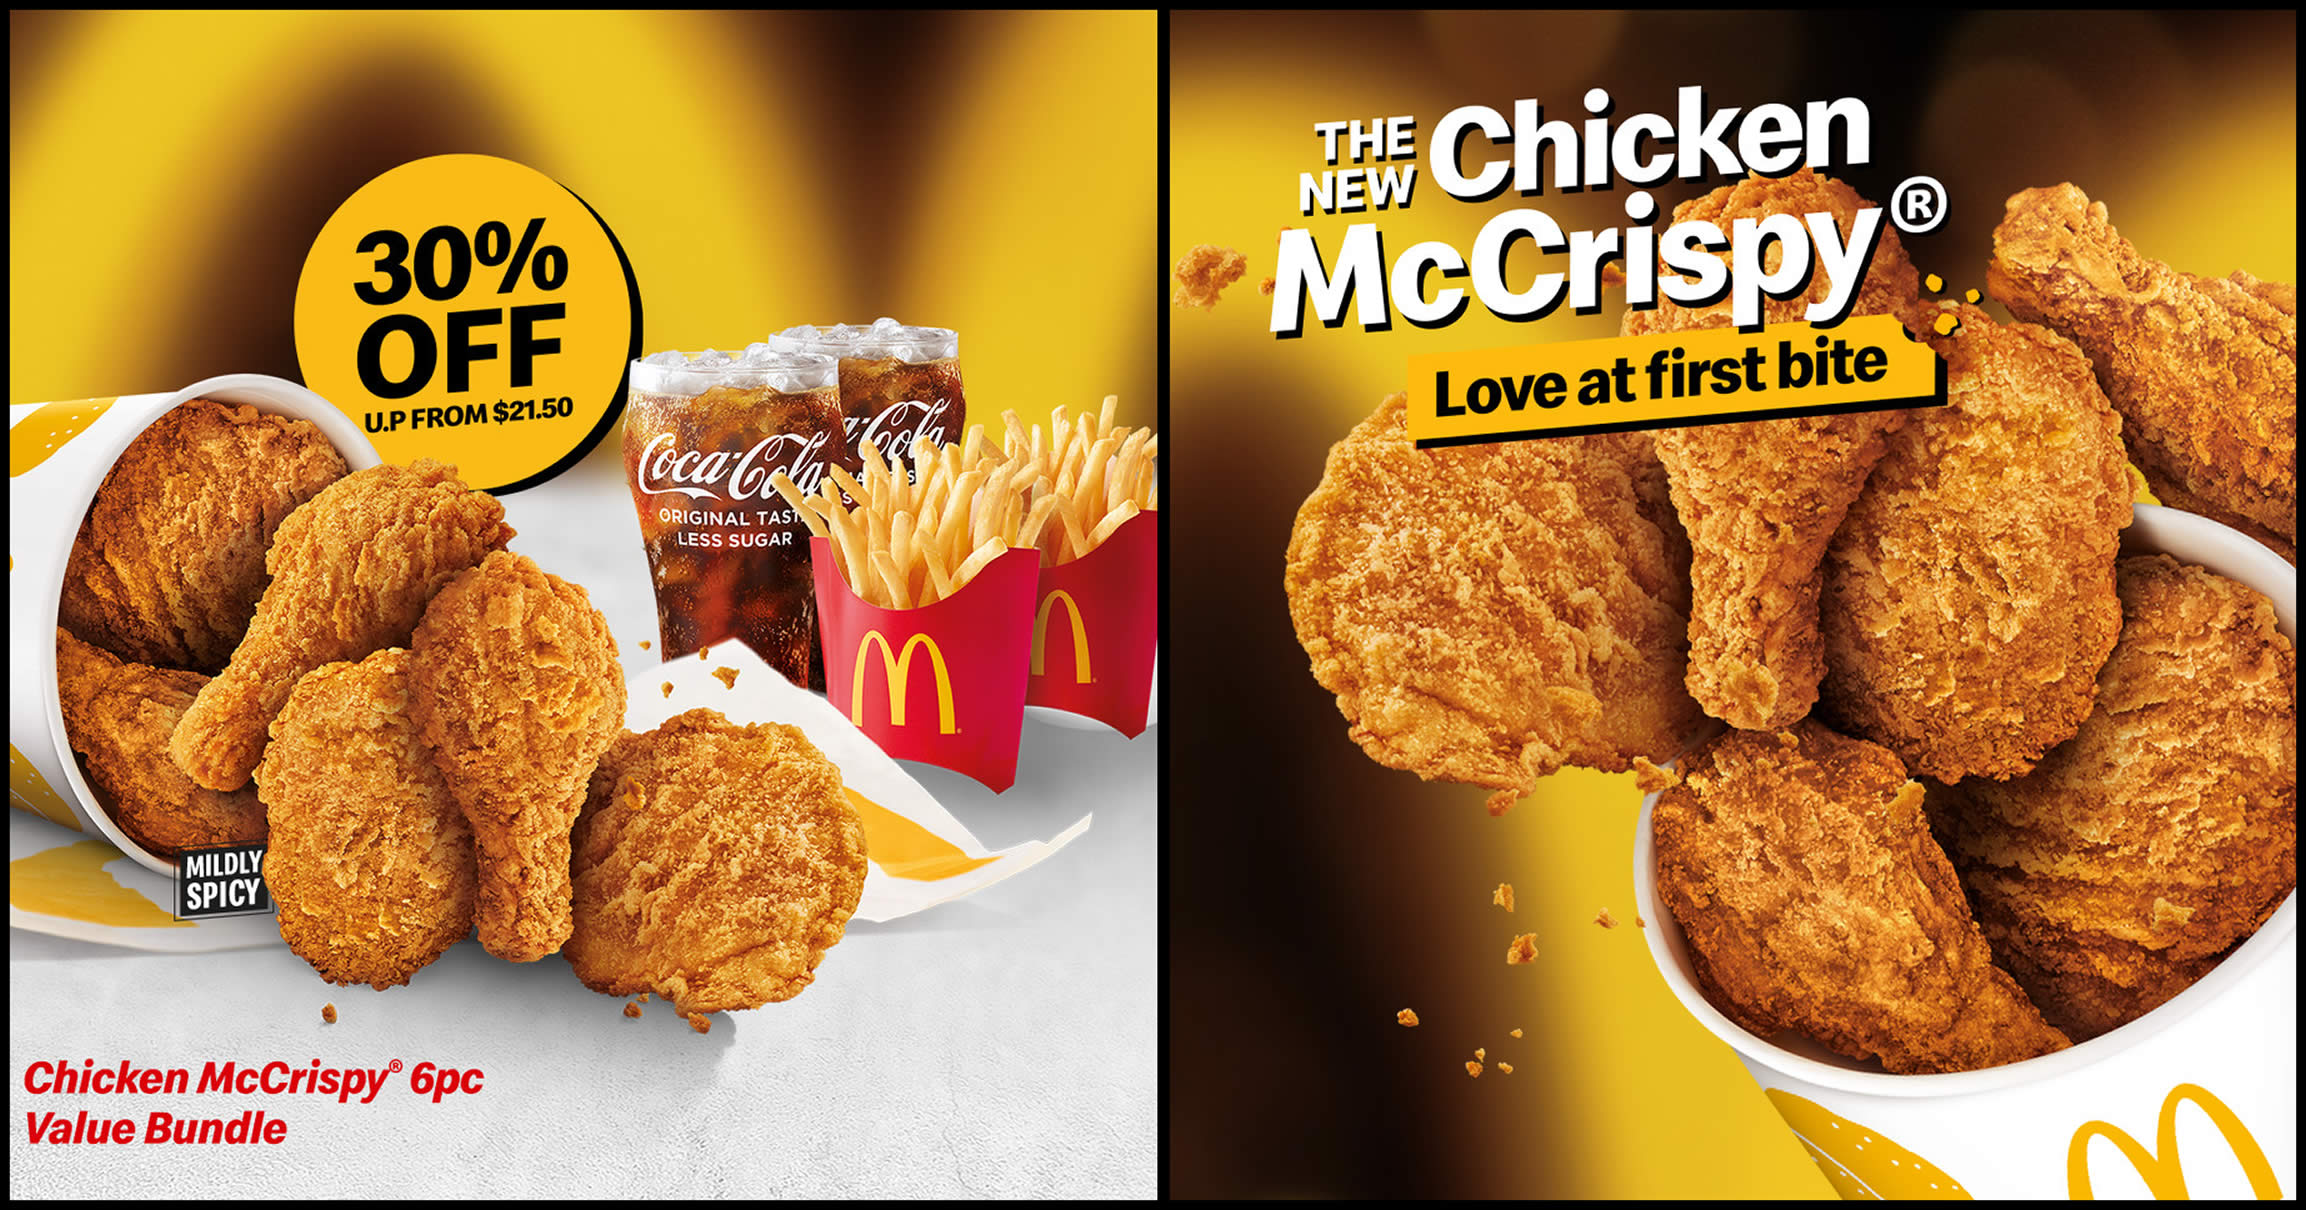 Featured image for McDonald's S'pore: 30% off Chicken McCrispy® 6pc Value Bundle on 6 July 2021